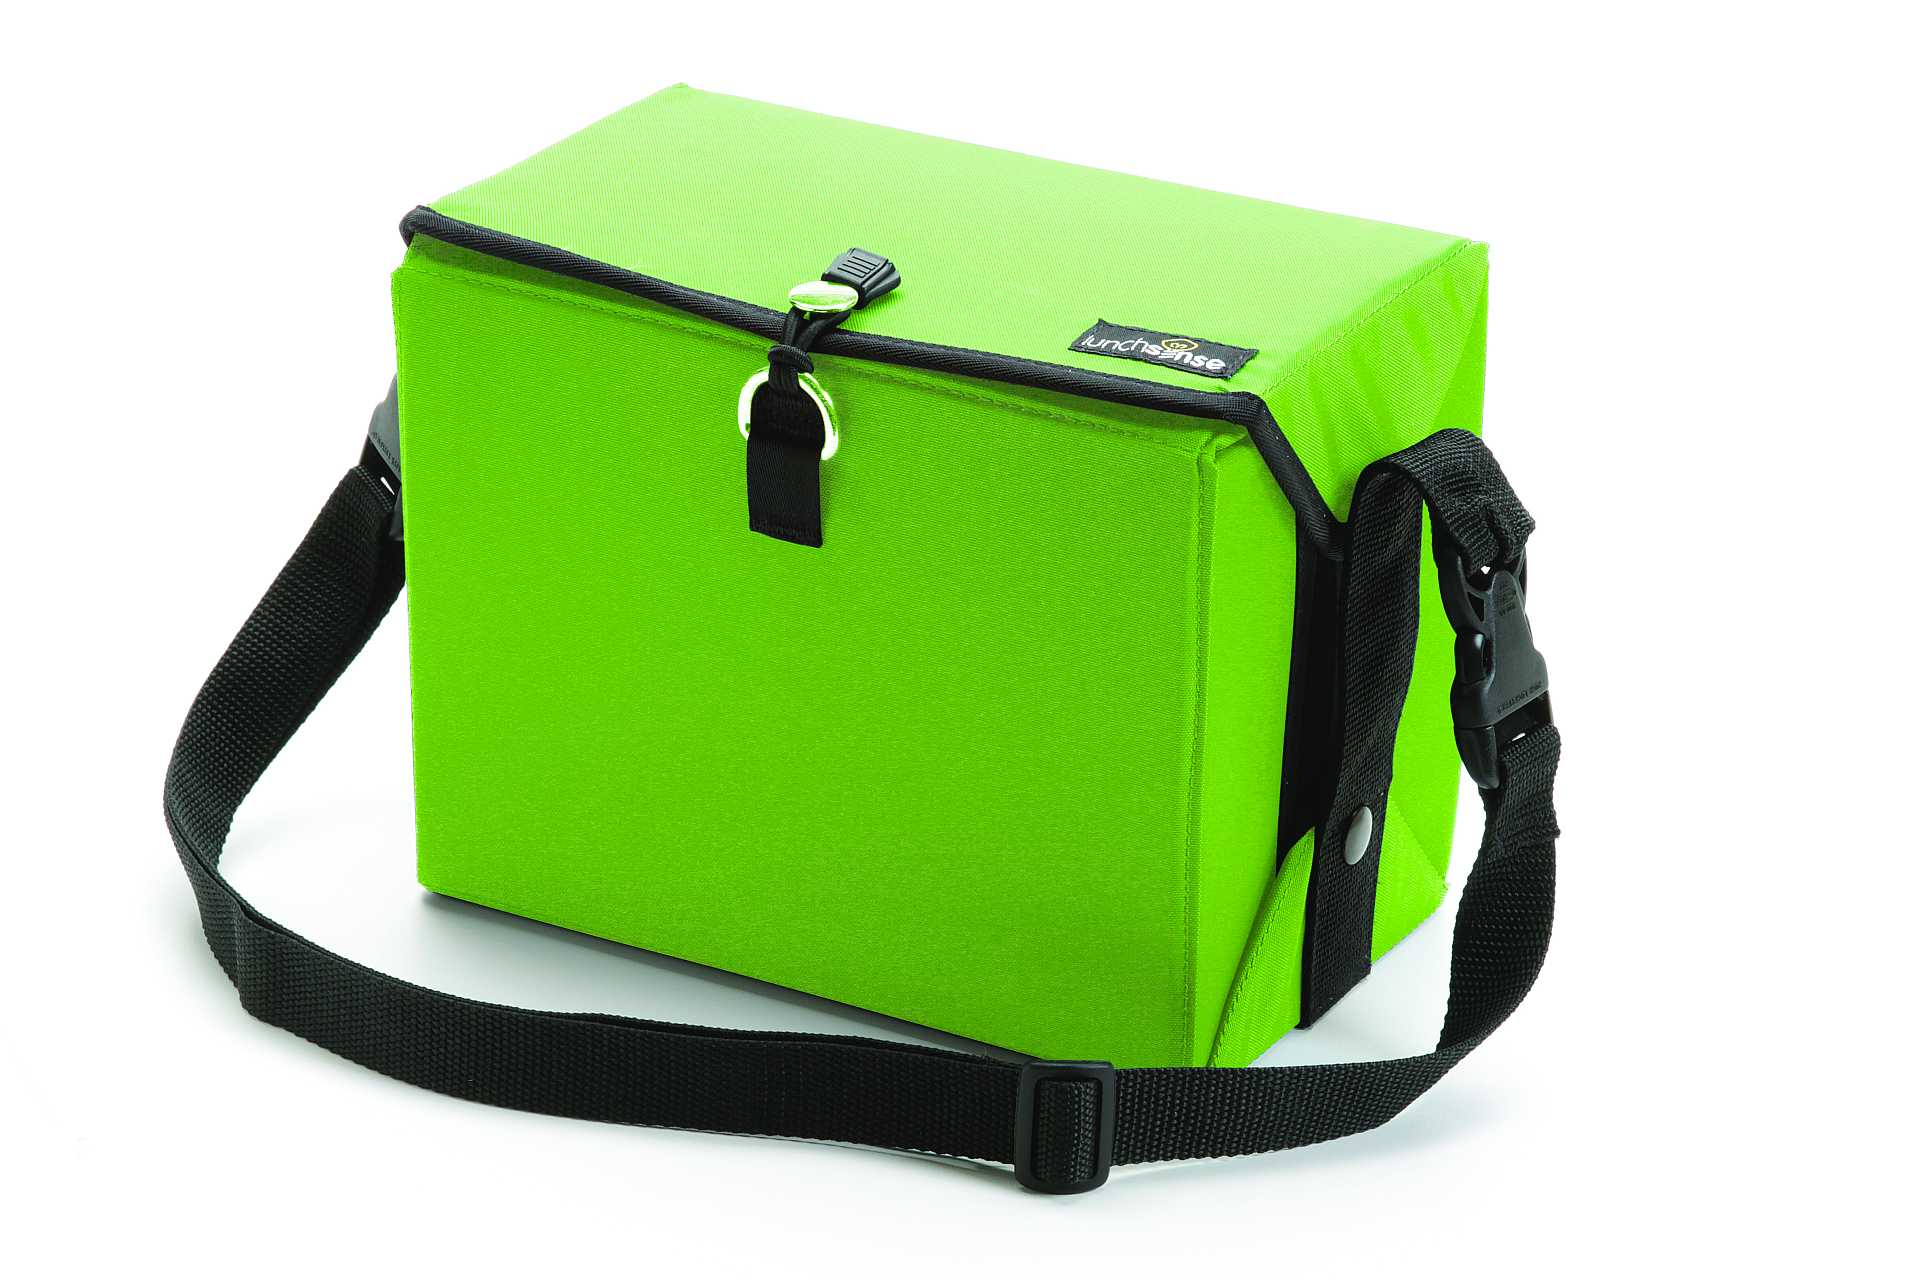 LunchSense Large Lunch Box W/ Food Storage Container Sets - Lime at Sears.com